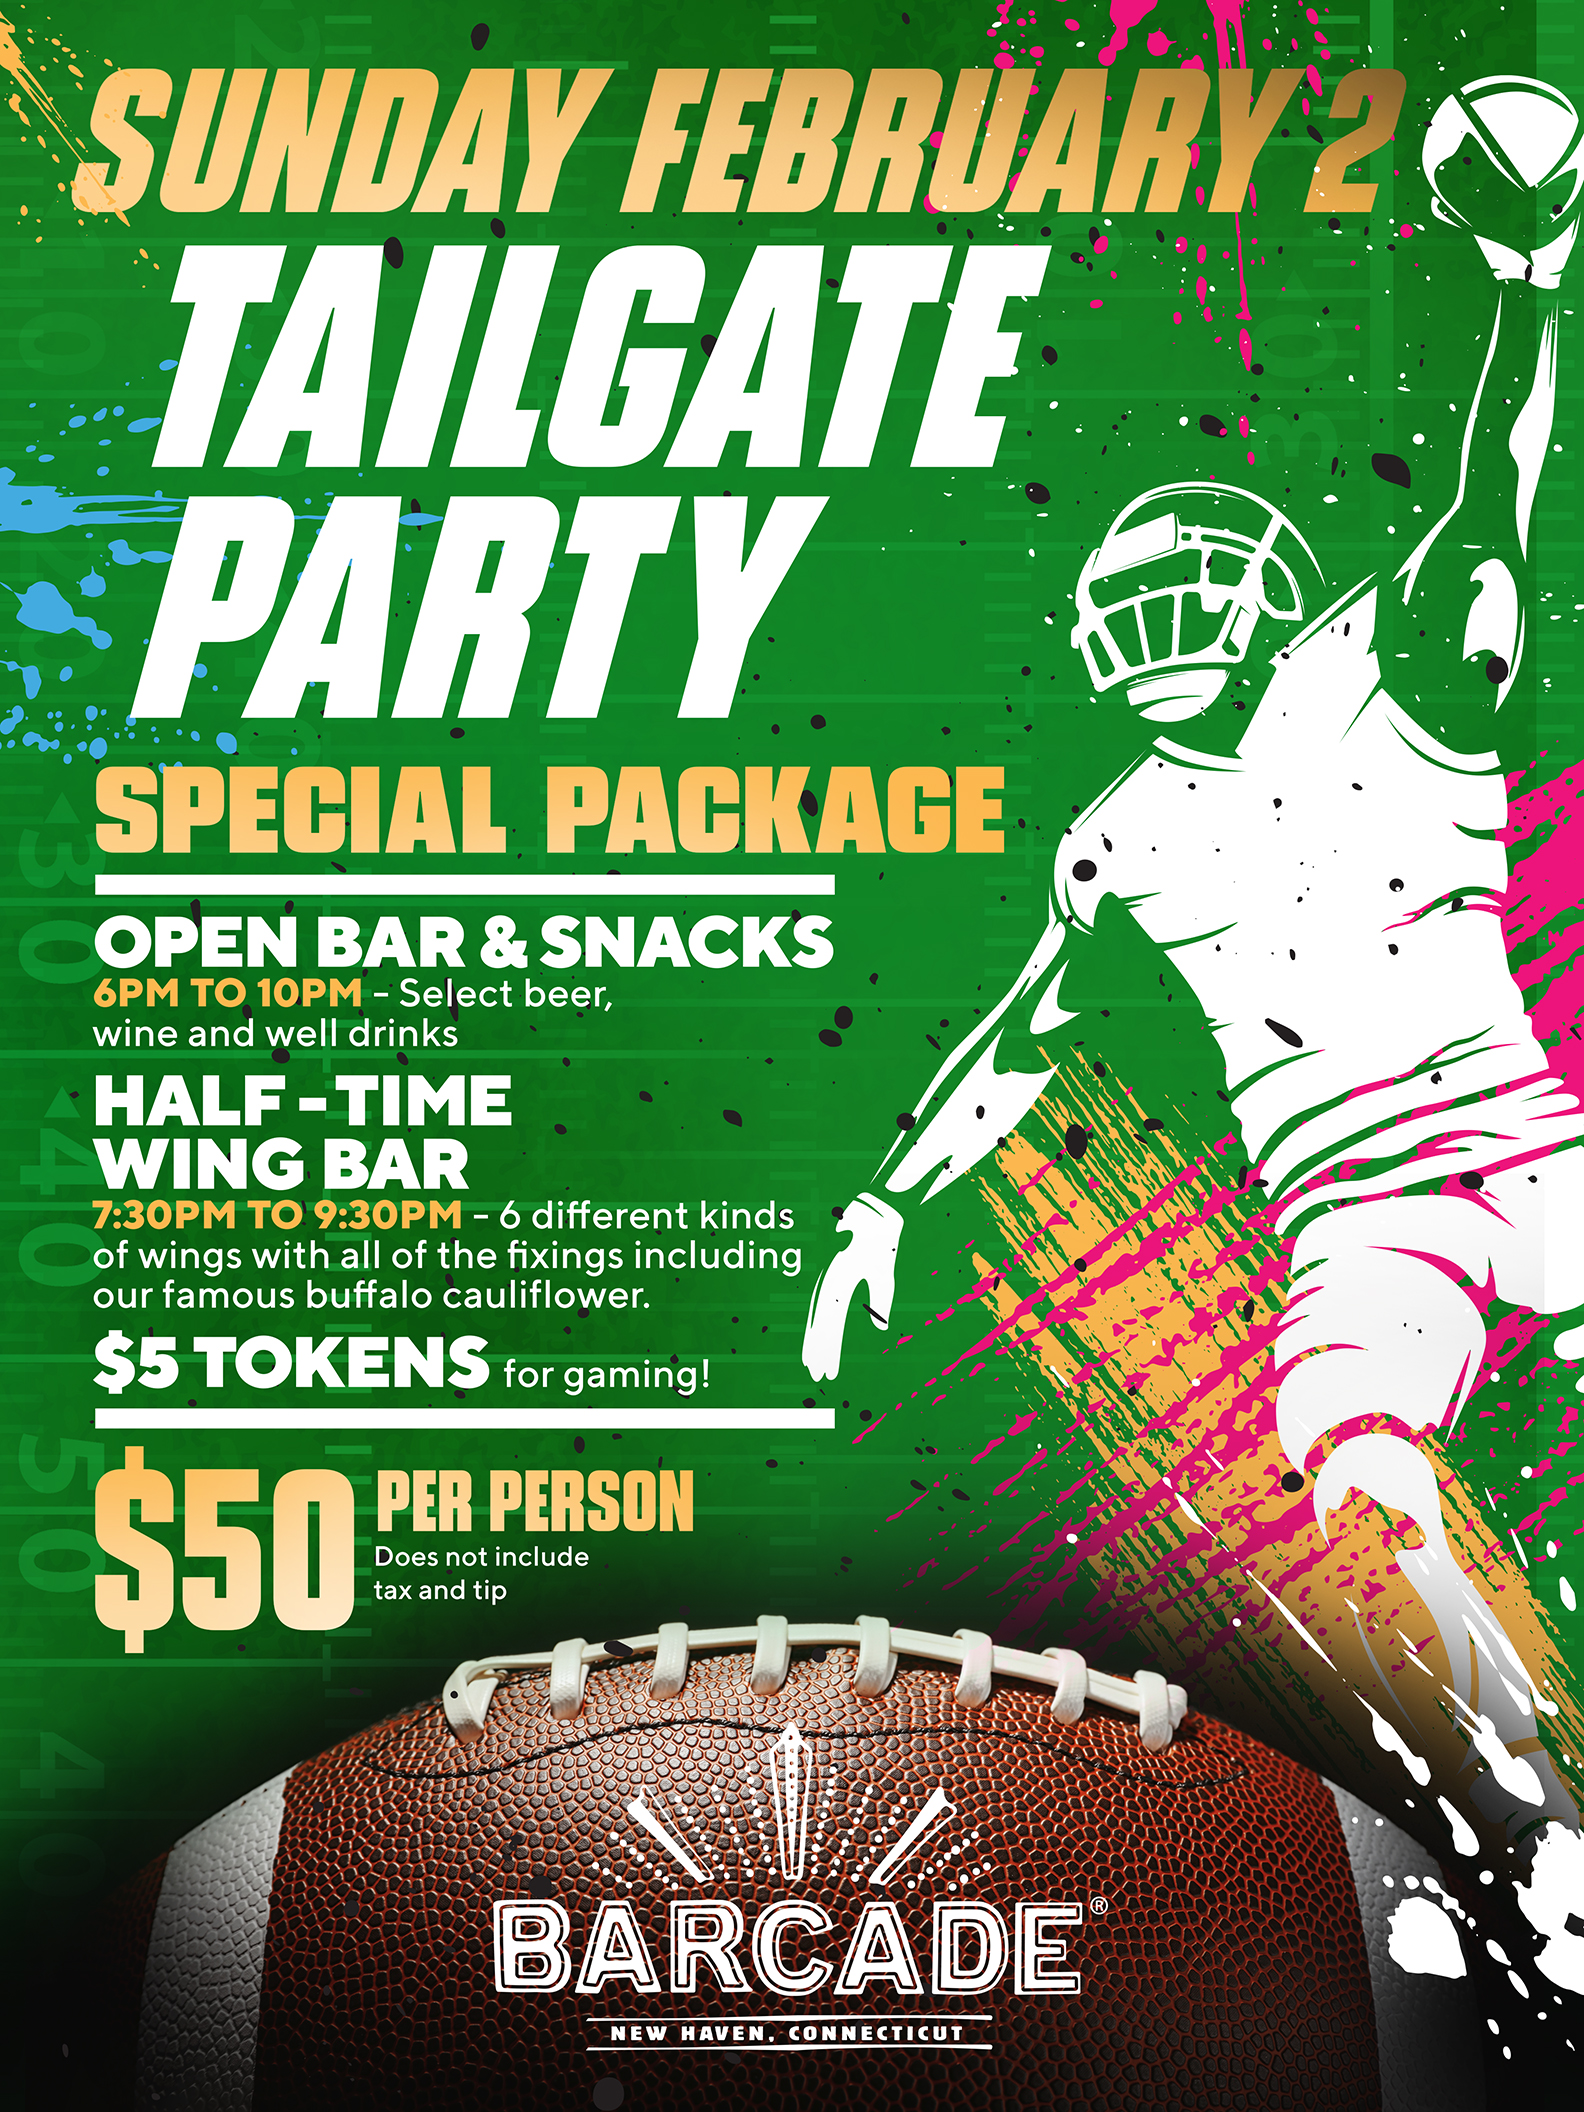 Tailgate Party at Barcade® on Sunday, February 2nd, 2020 in New Haven, CT